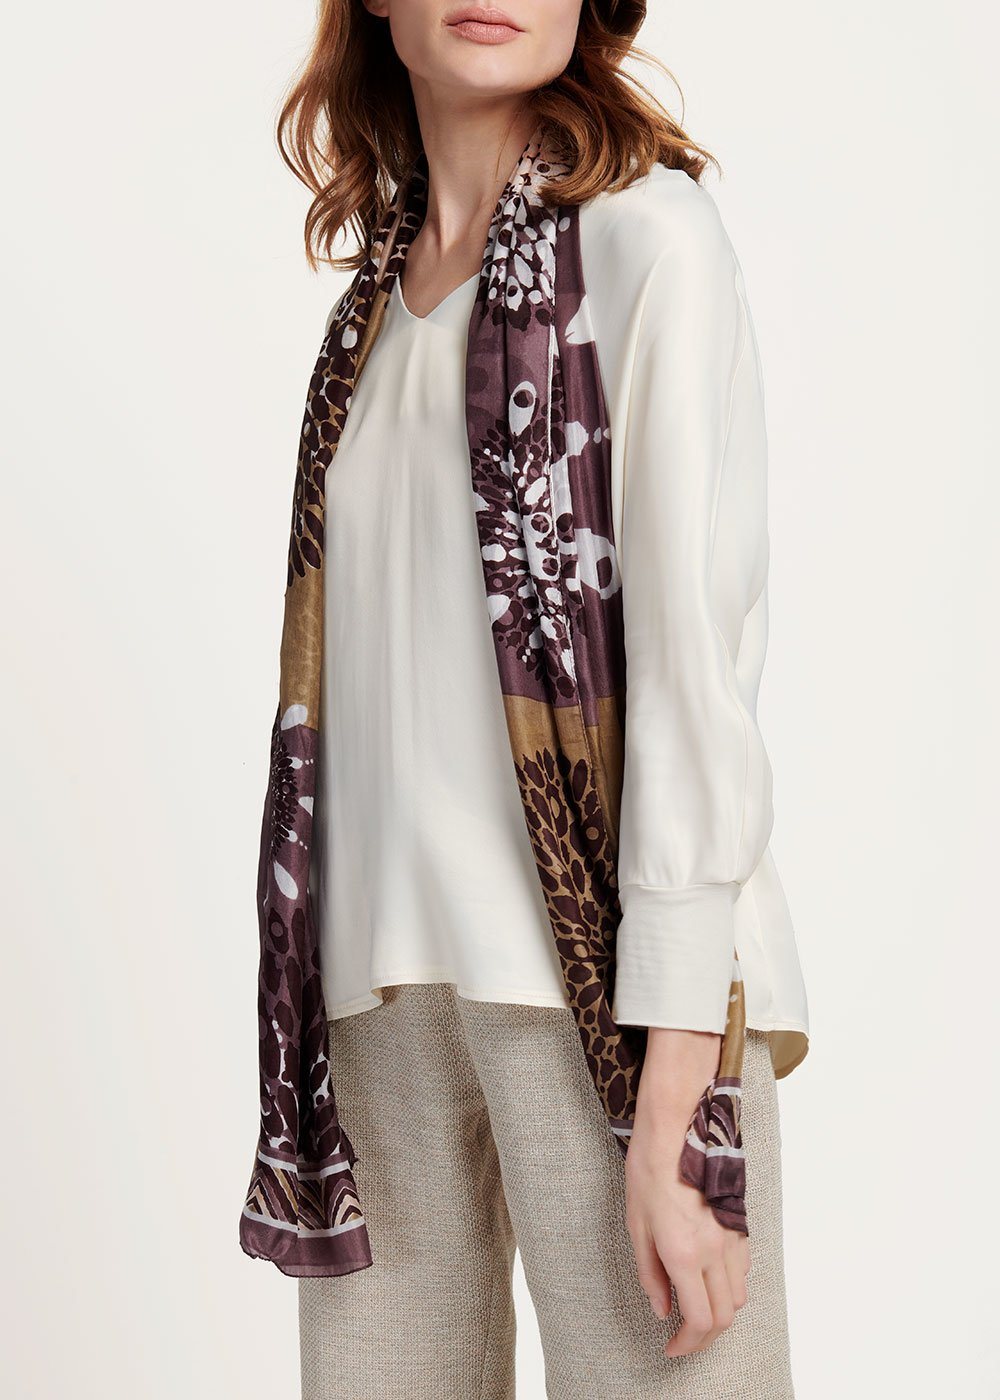 Sail scarf with flower print - Maracuja / Desert Fantasia	 - Woman